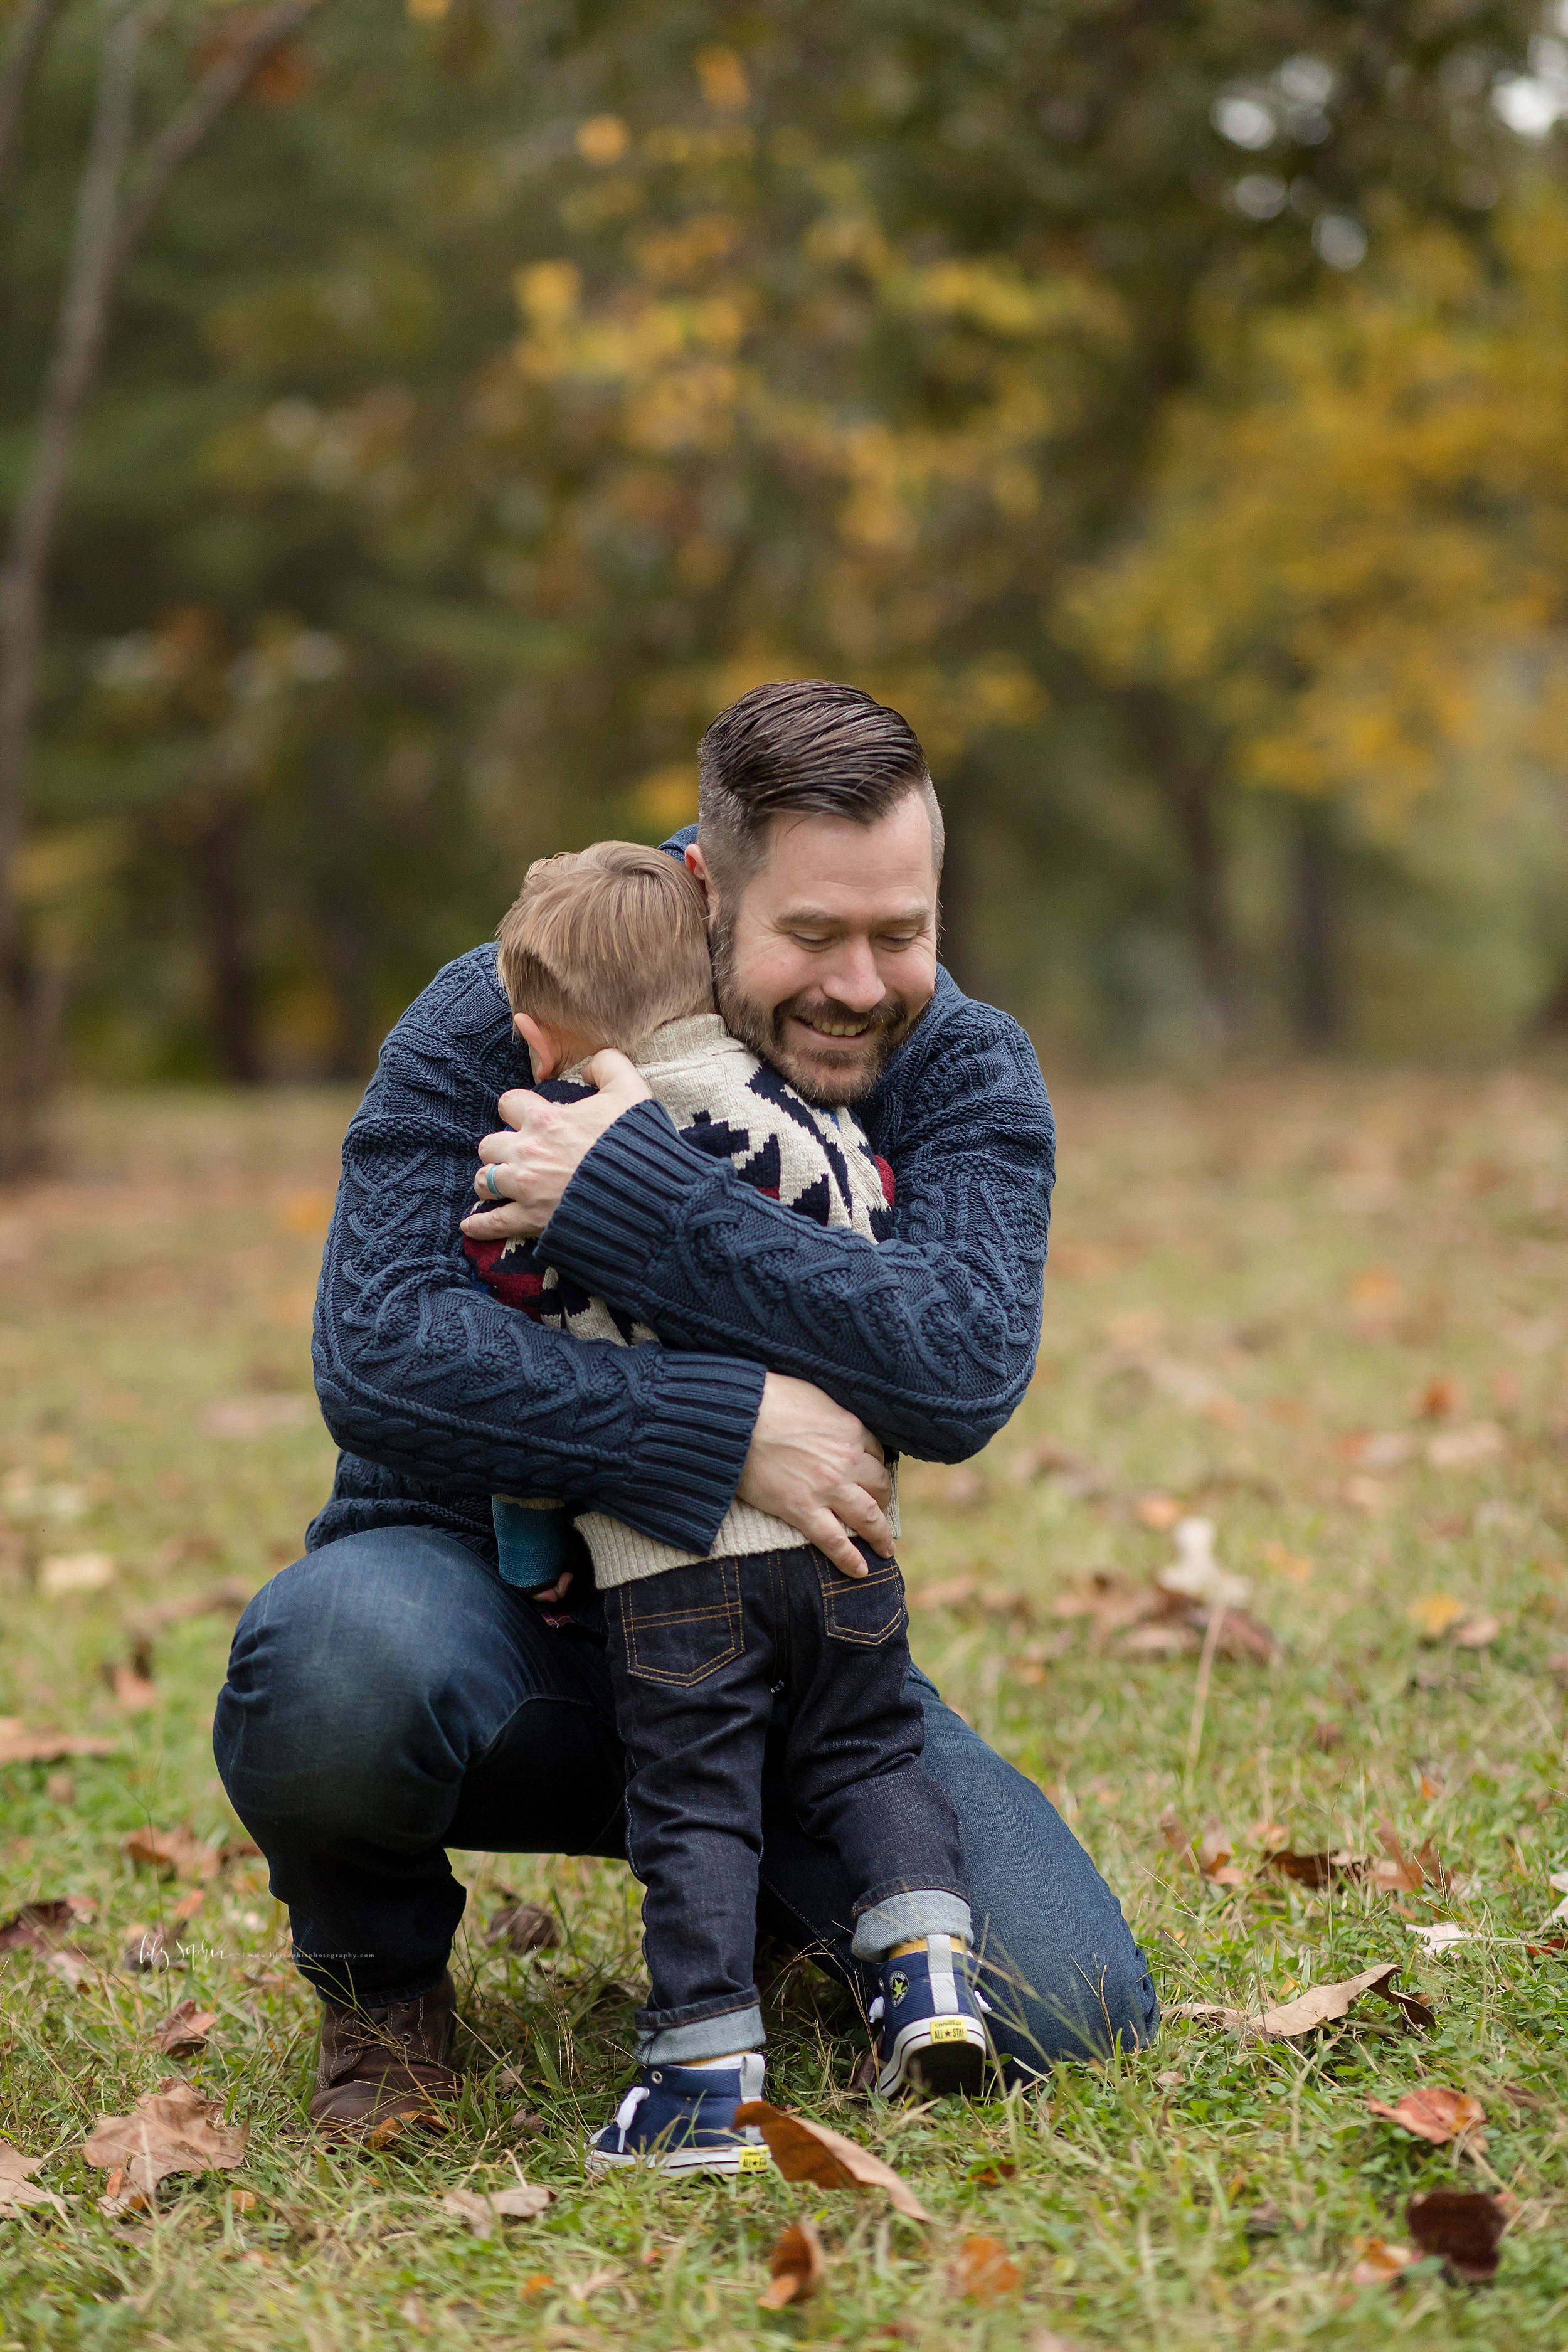 Photo of a young boy being embraced by his father as in a park during autumn in Atlanta.  The father is wrapping his arms around his young son as his son puts his face into his father's shoulder.